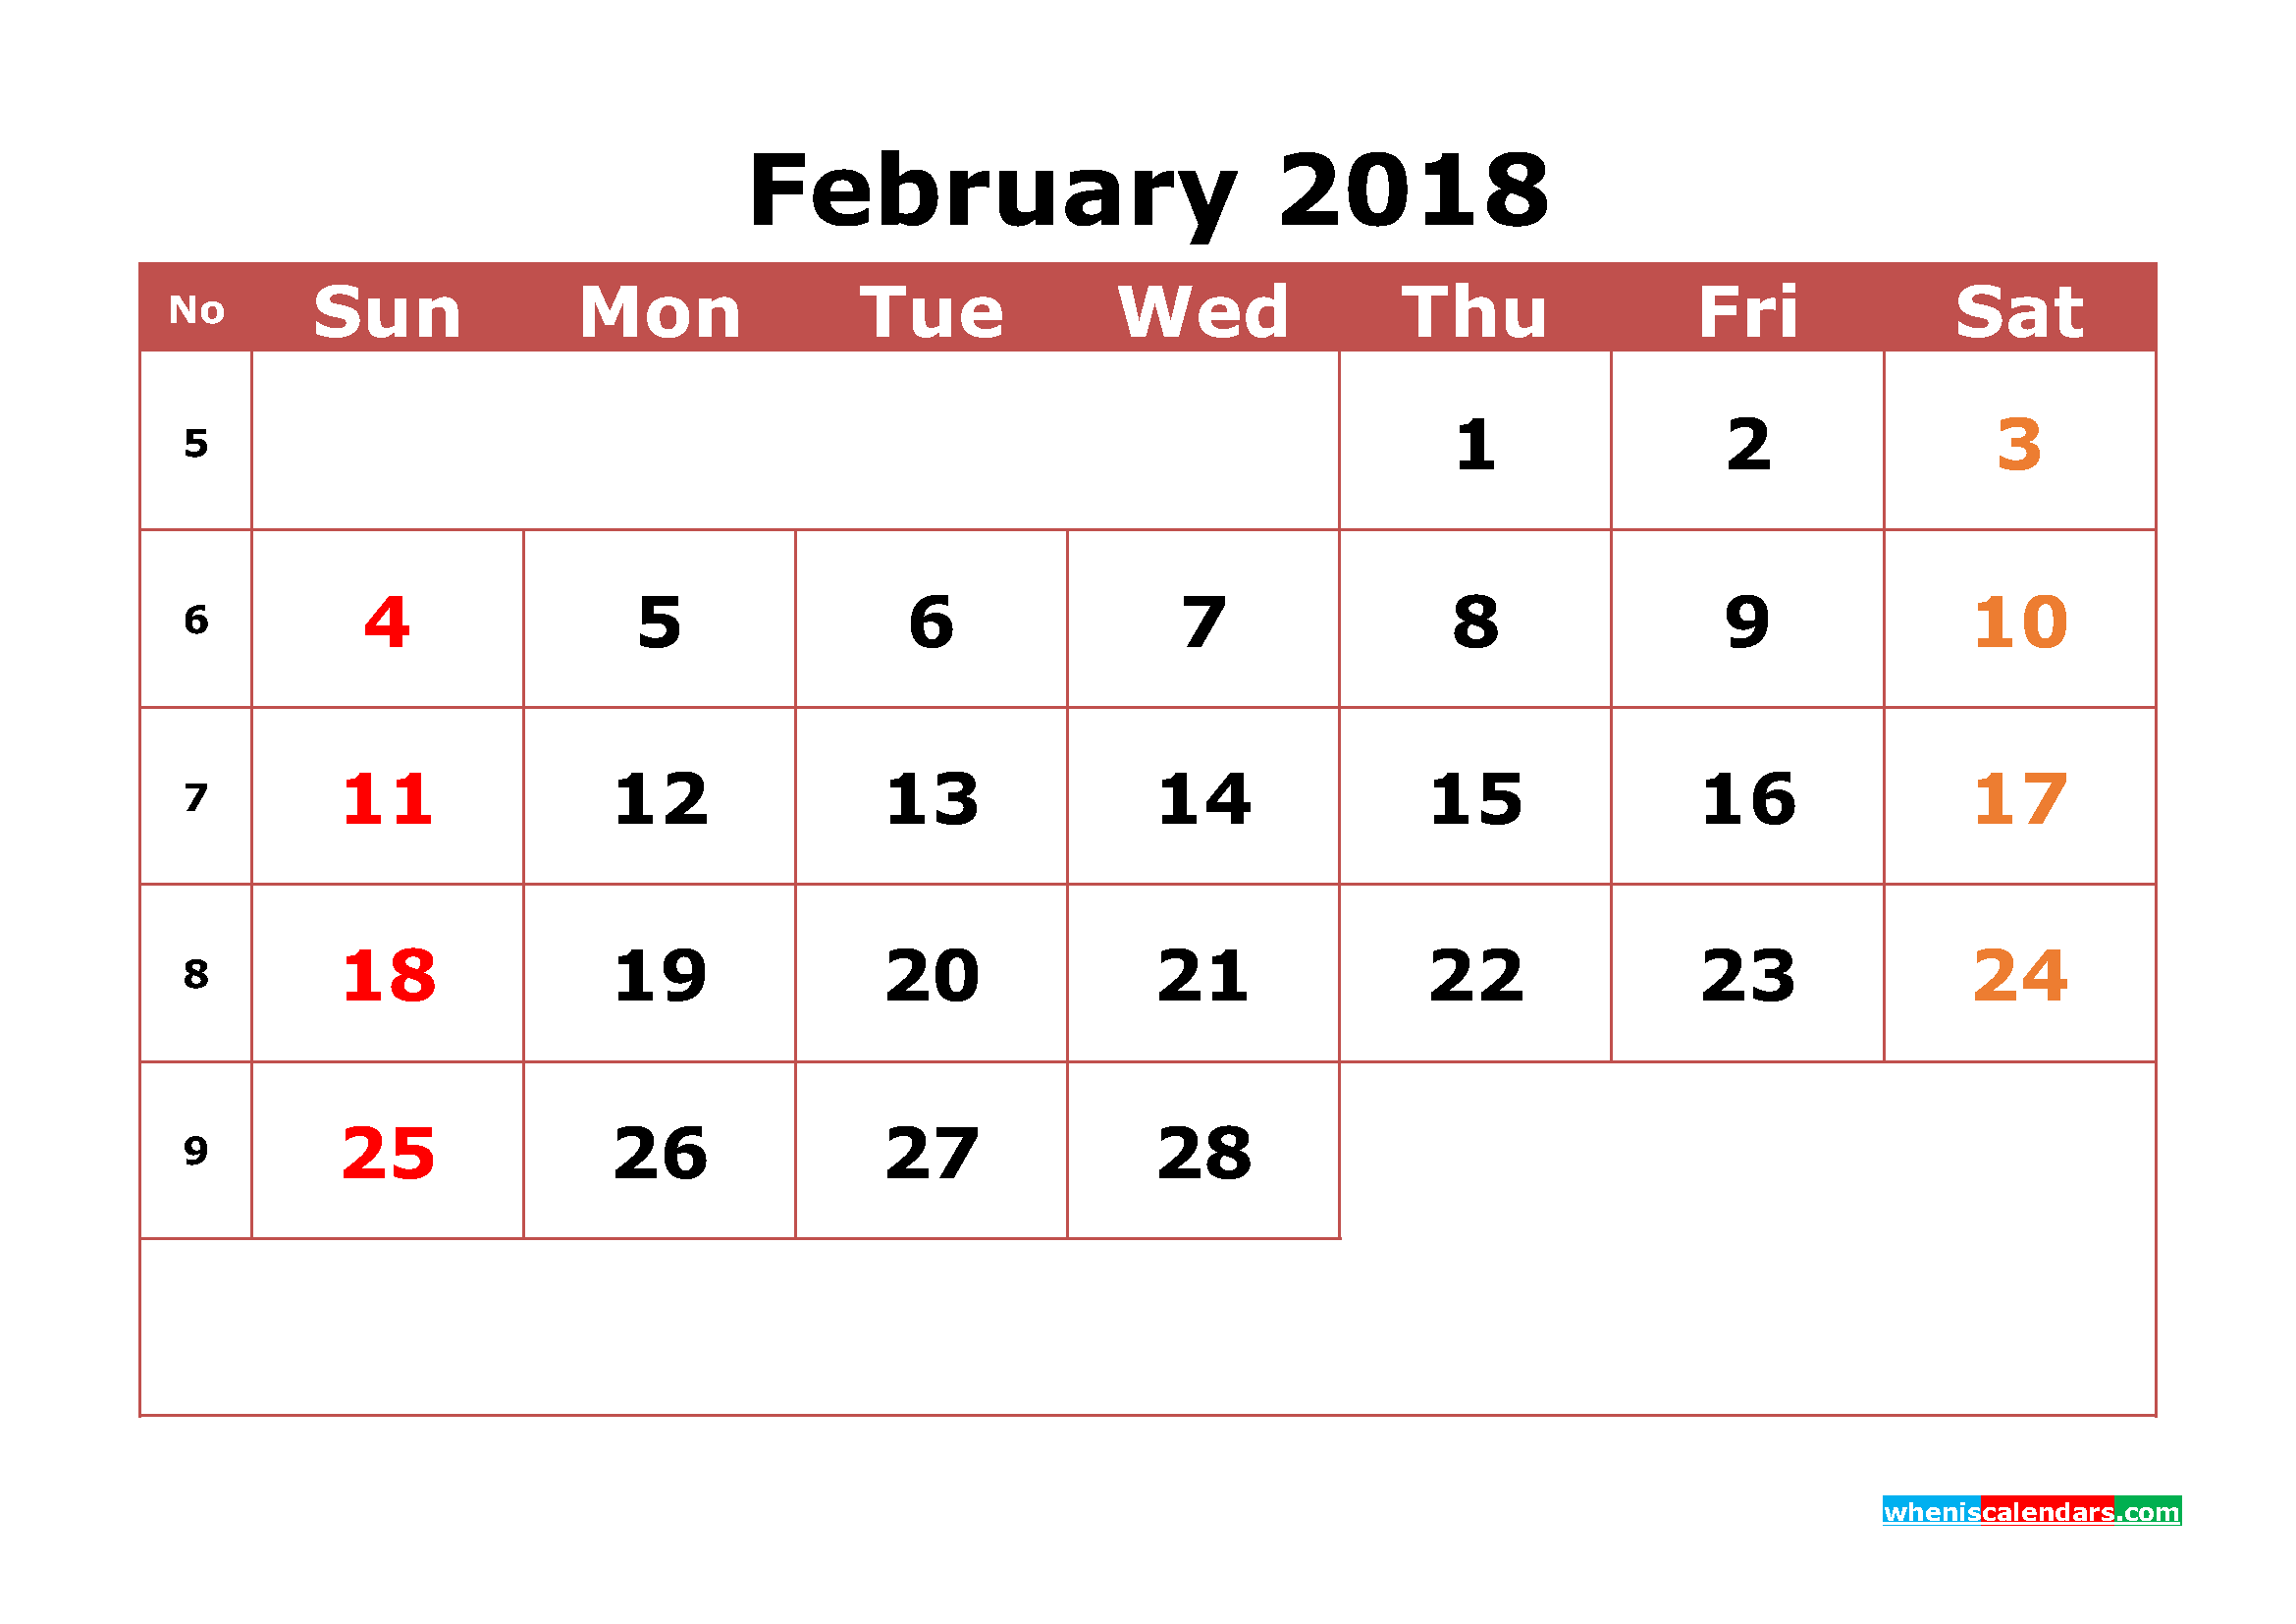 February 2018 Calendar Printable with Week Numbers Image